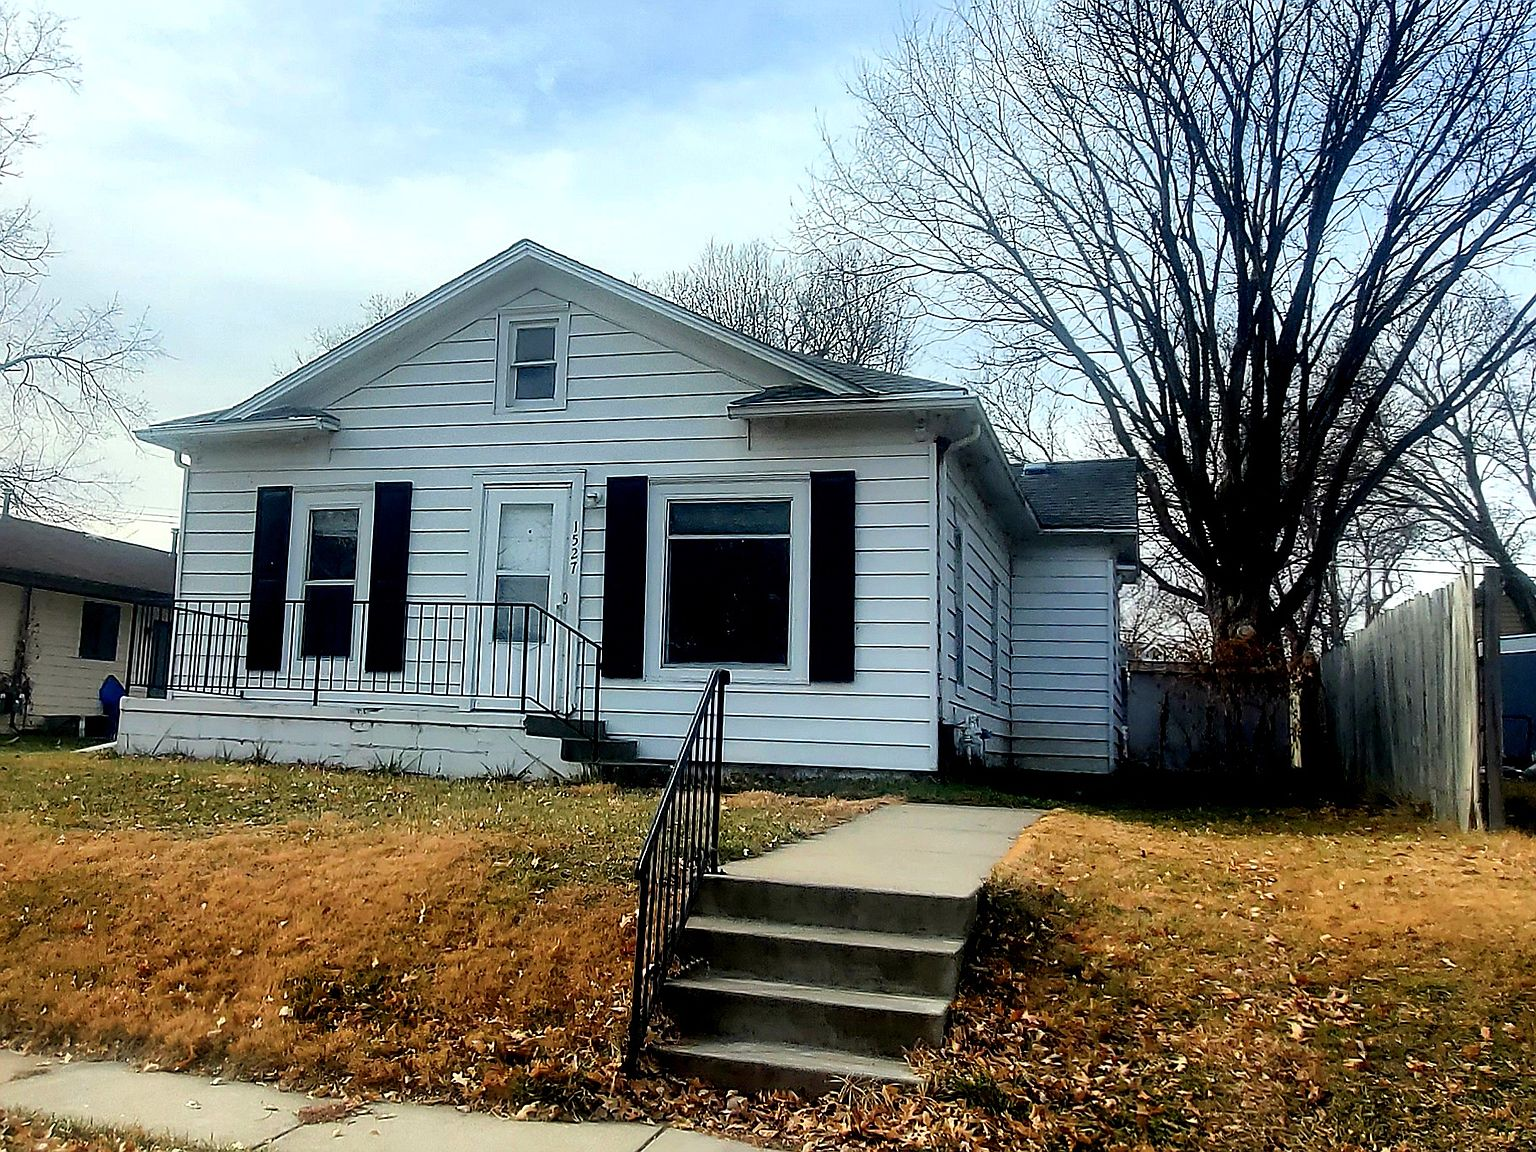 1527 N 23rd St Lincoln Ne 68503 Zillow Explore the homes with newest listings that are currently for sale in lincoln, ne, where the average value of homes with newest listings is $215,000. zillow